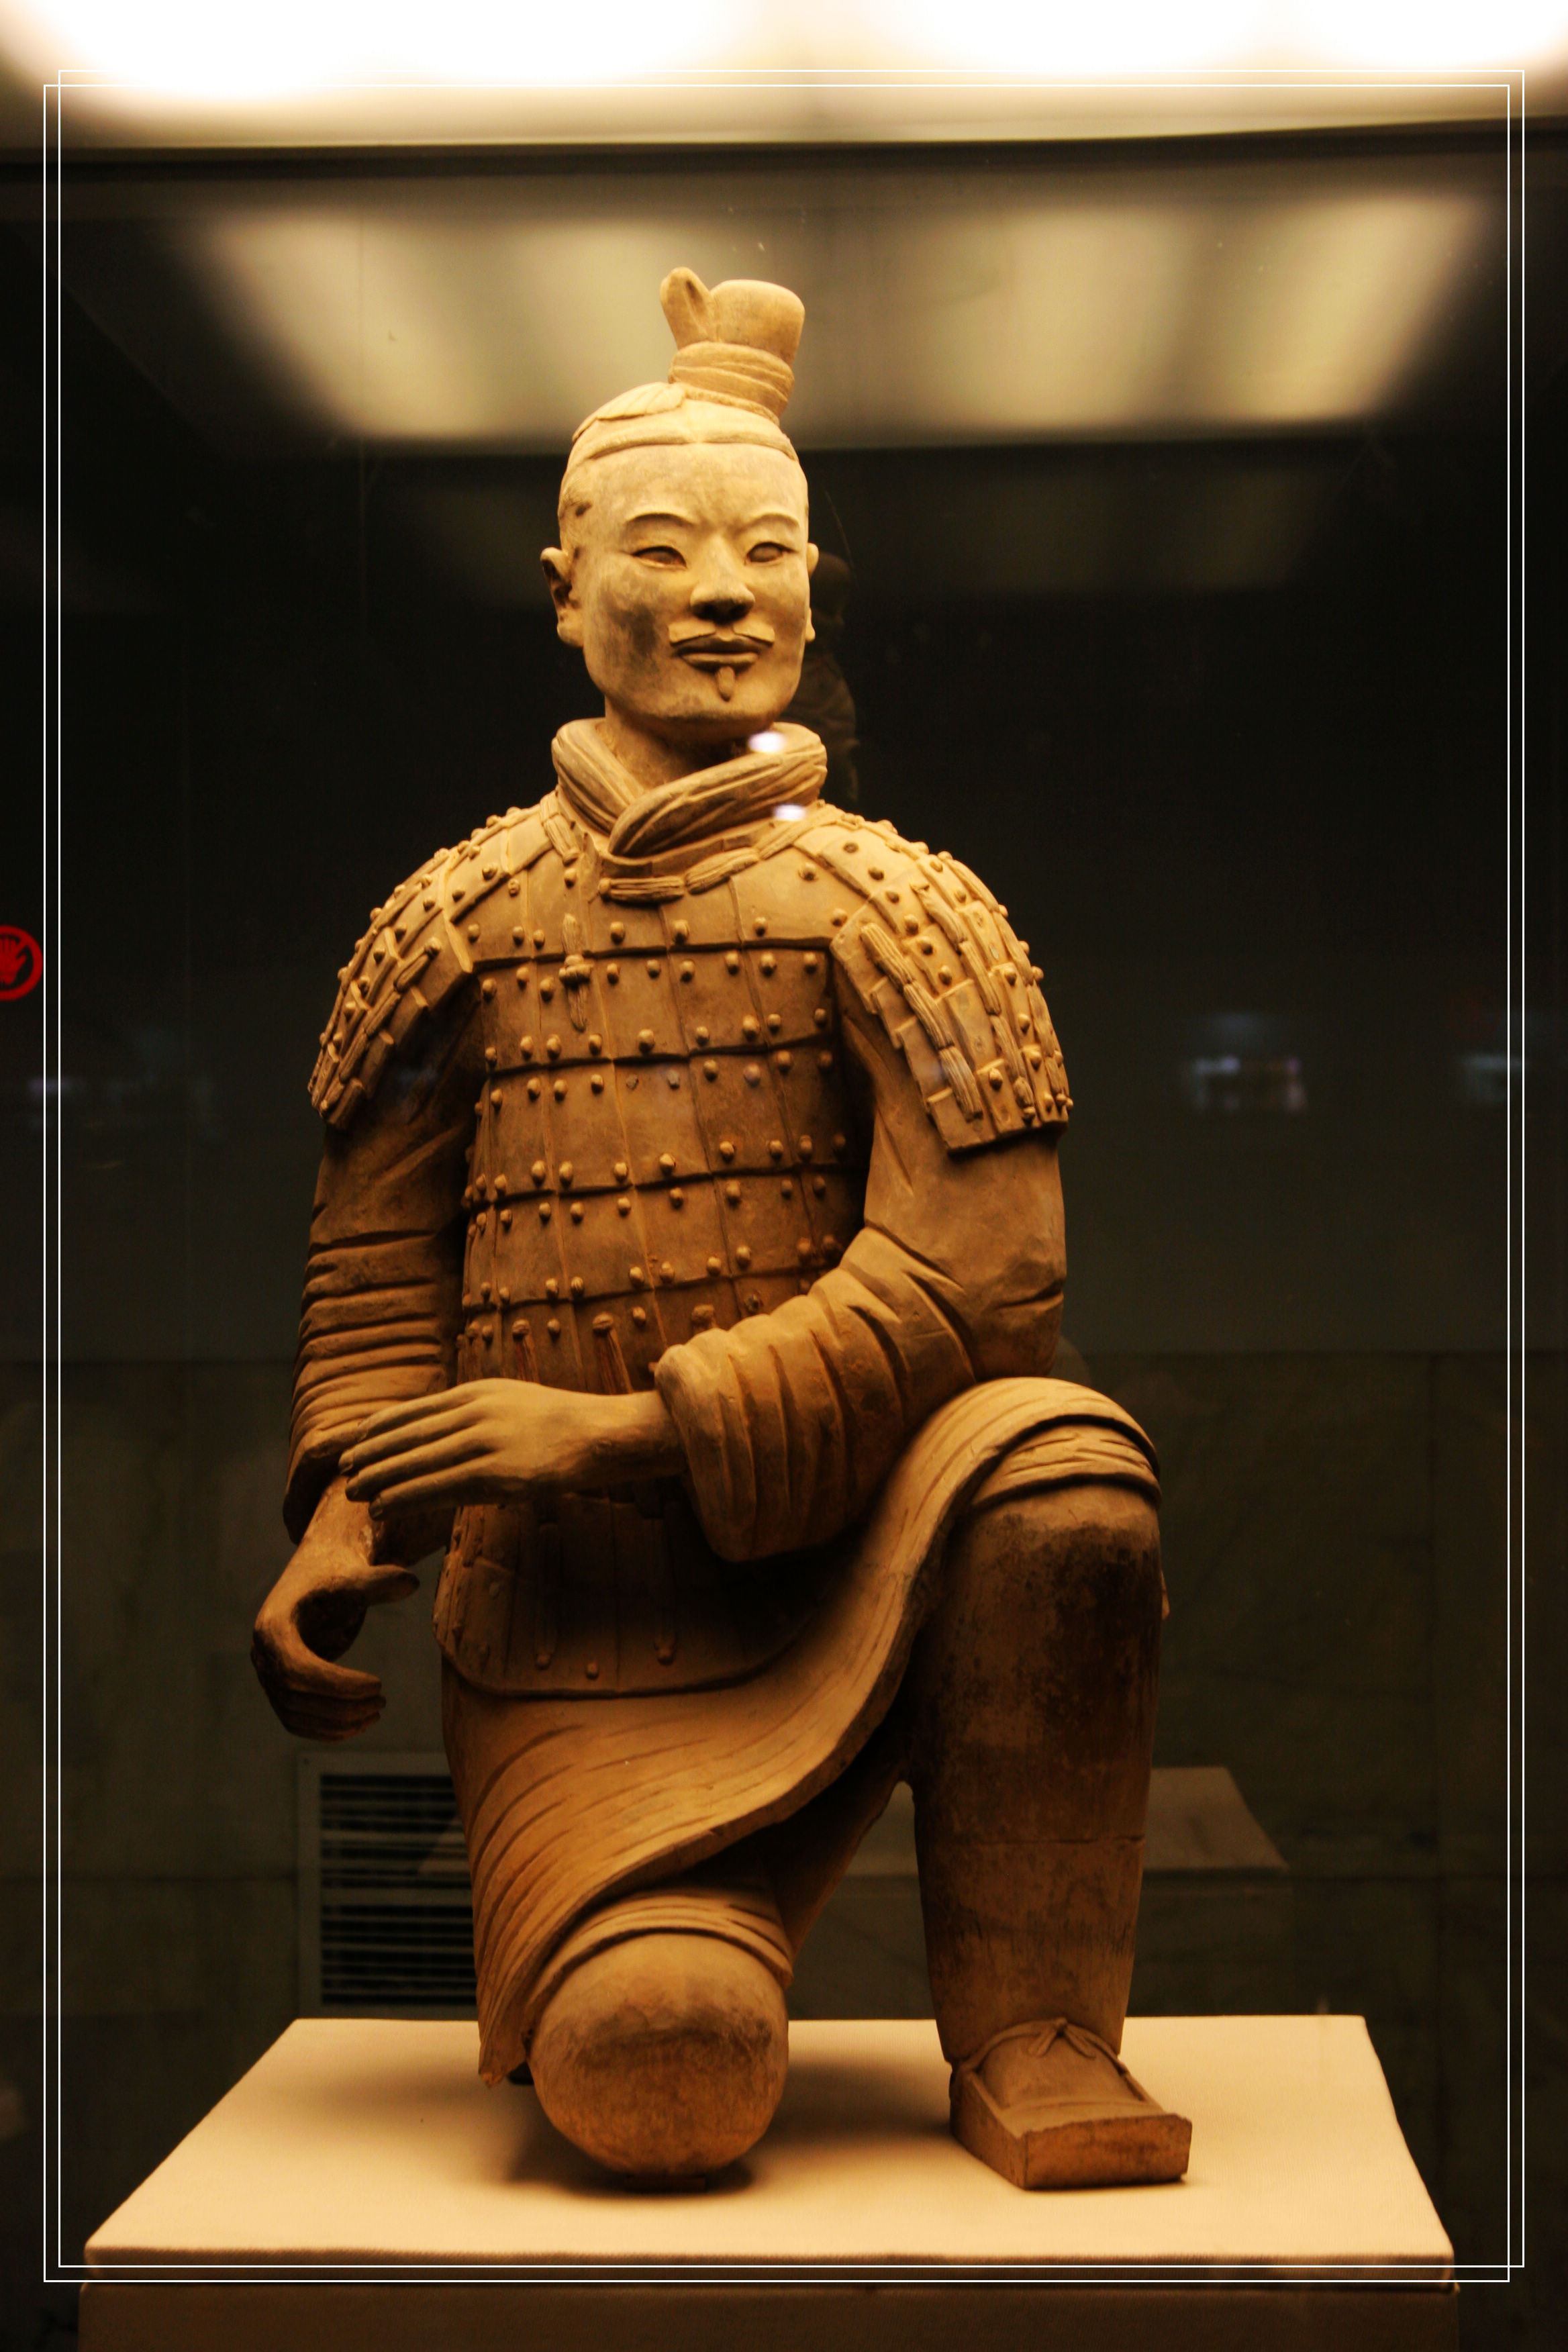 terracotta army 10 fun facts show you a live terracotta army: 2,200 years' history, its owner qin shi huang, 8,000 warriors taller than modern people, no similar faces.